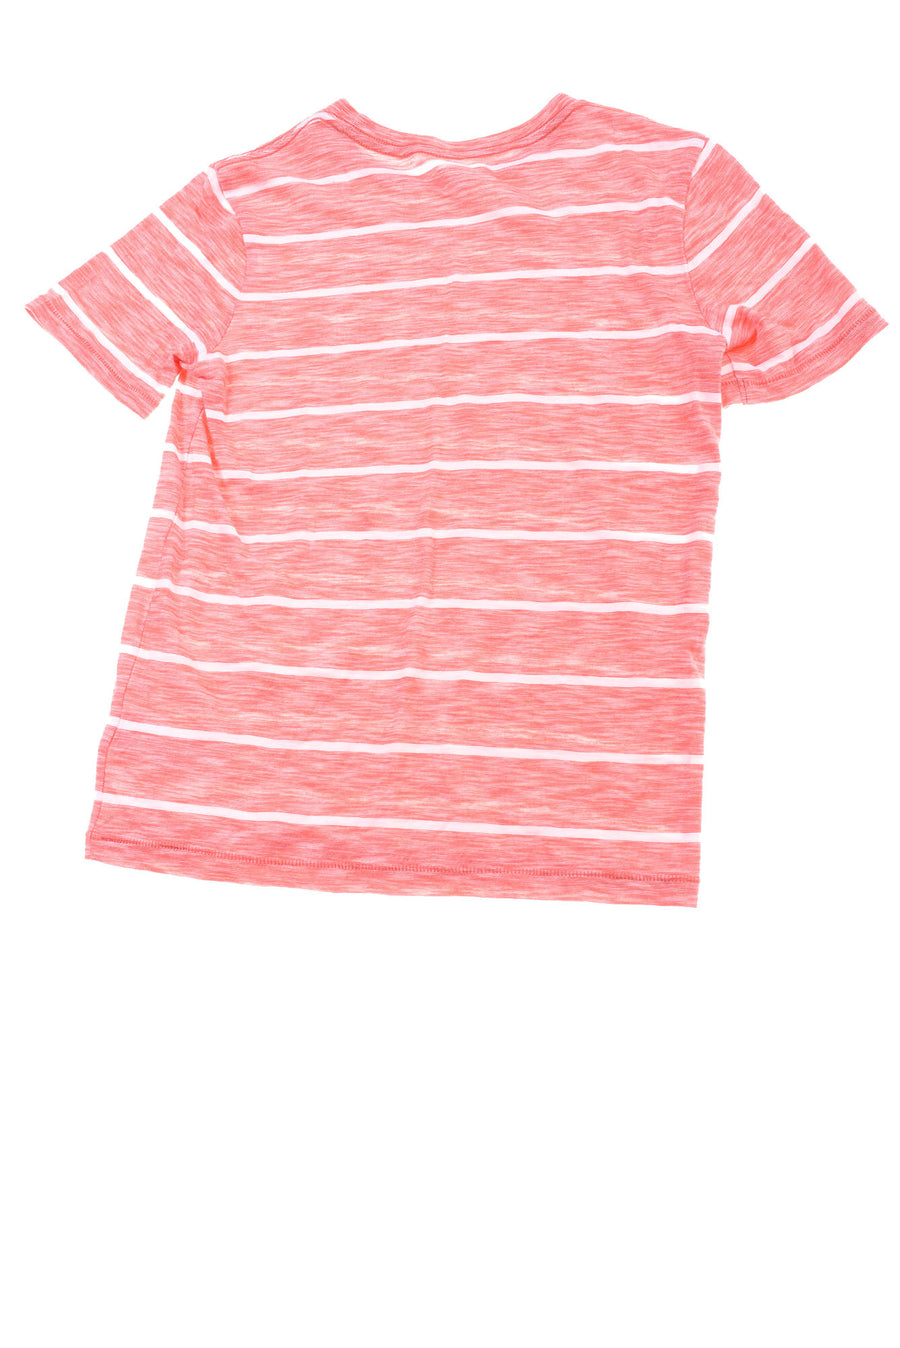 Boy's Shirt By Old Navy